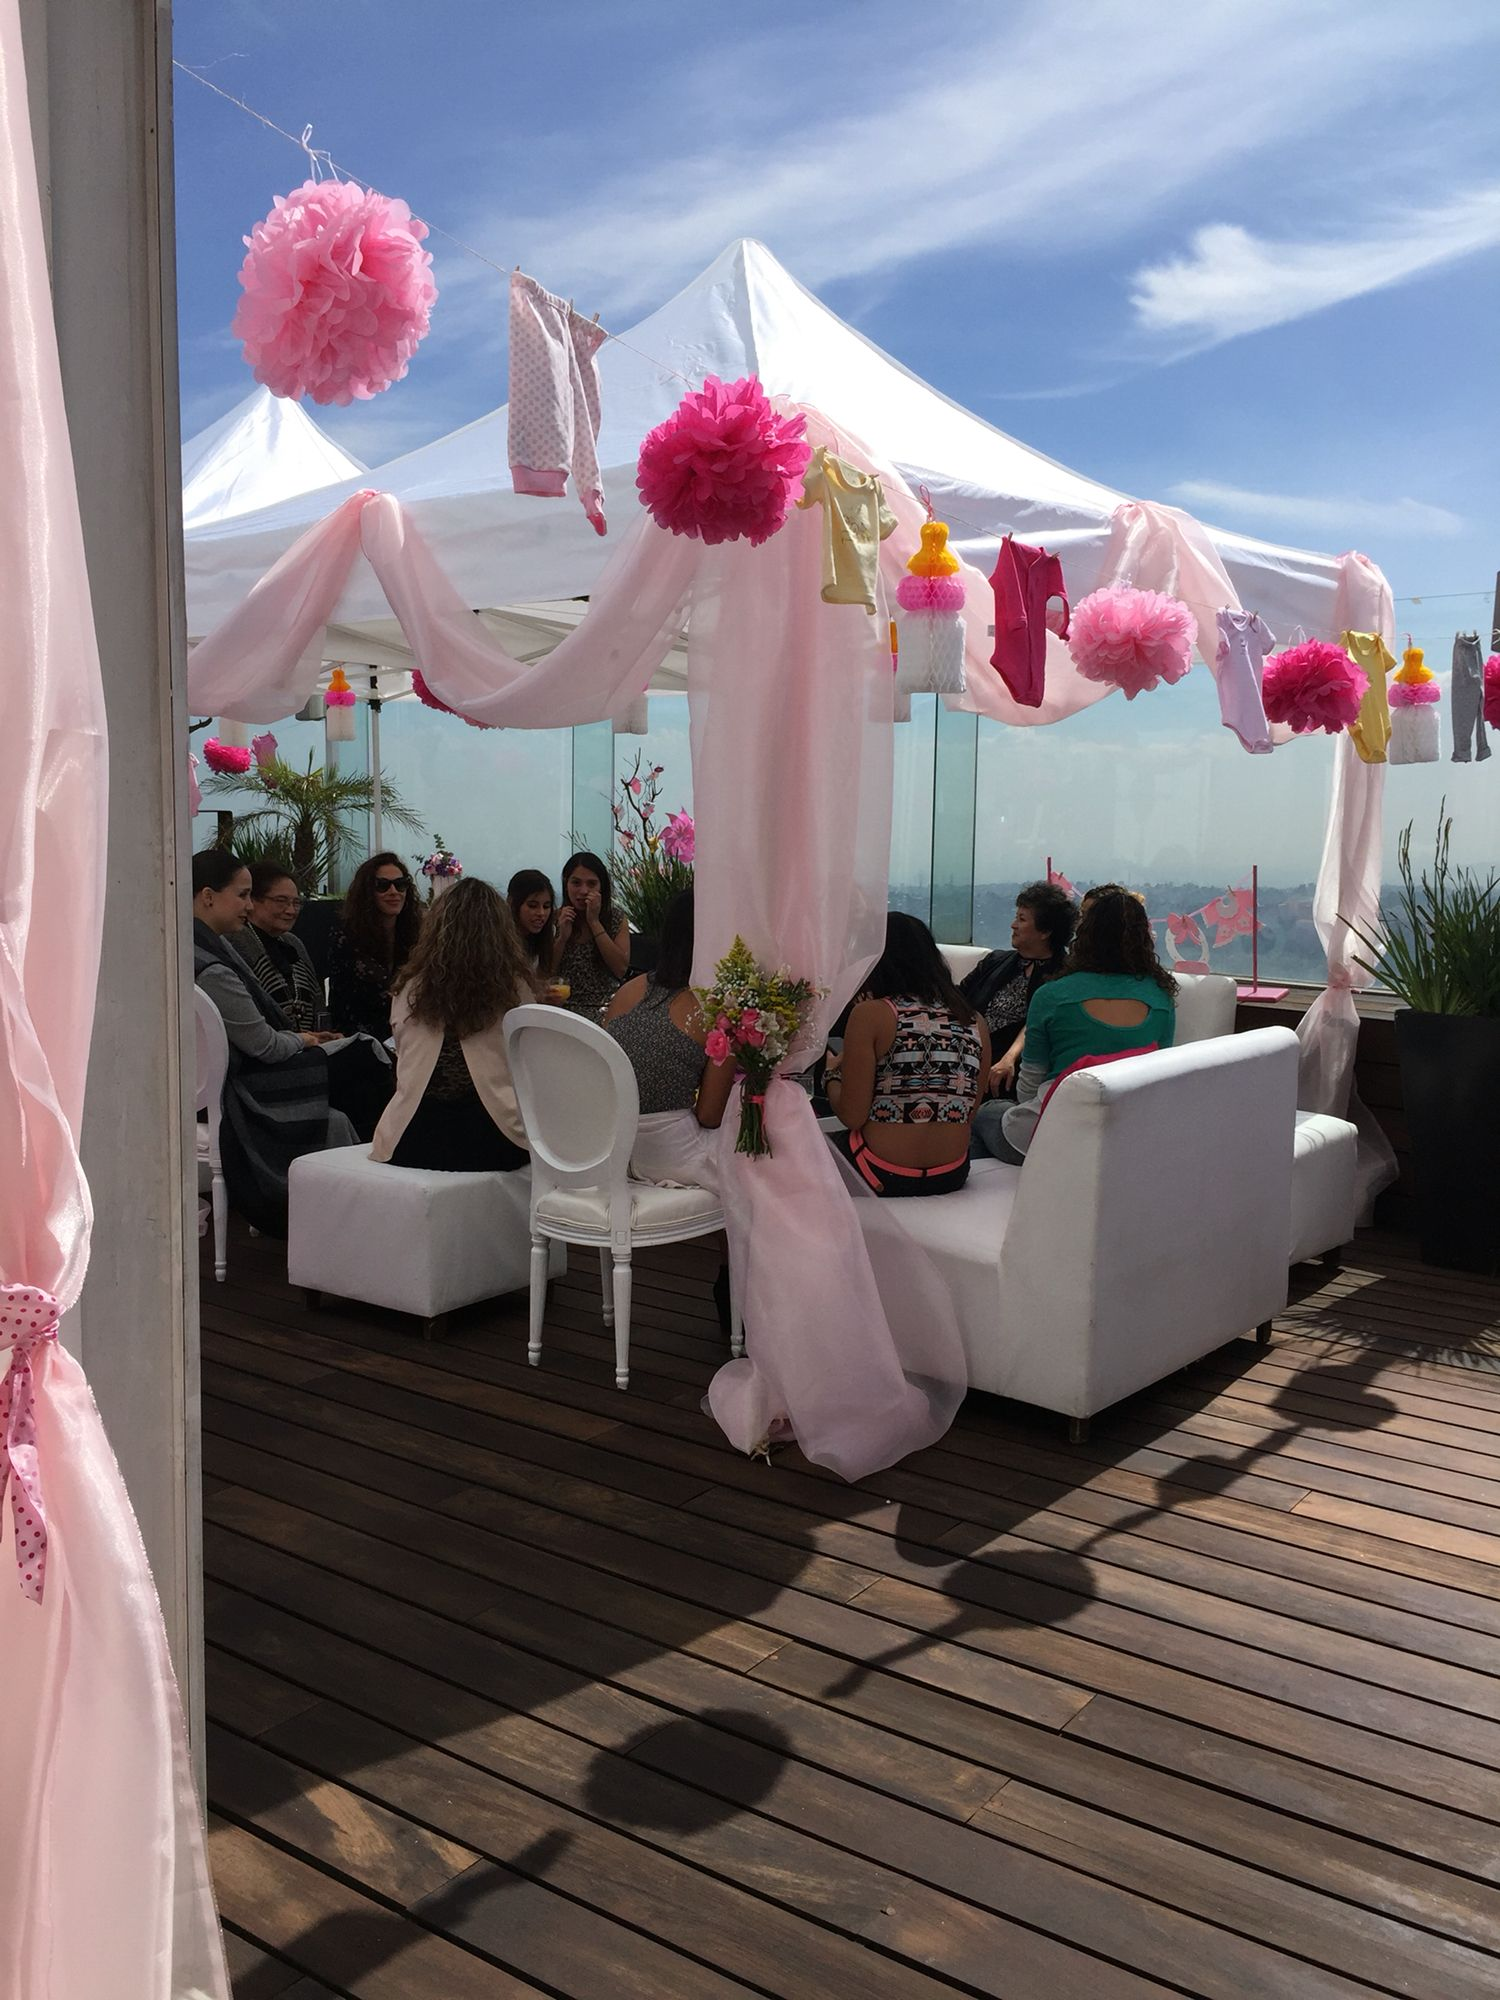 Decoraci³n de terraza para baby shower